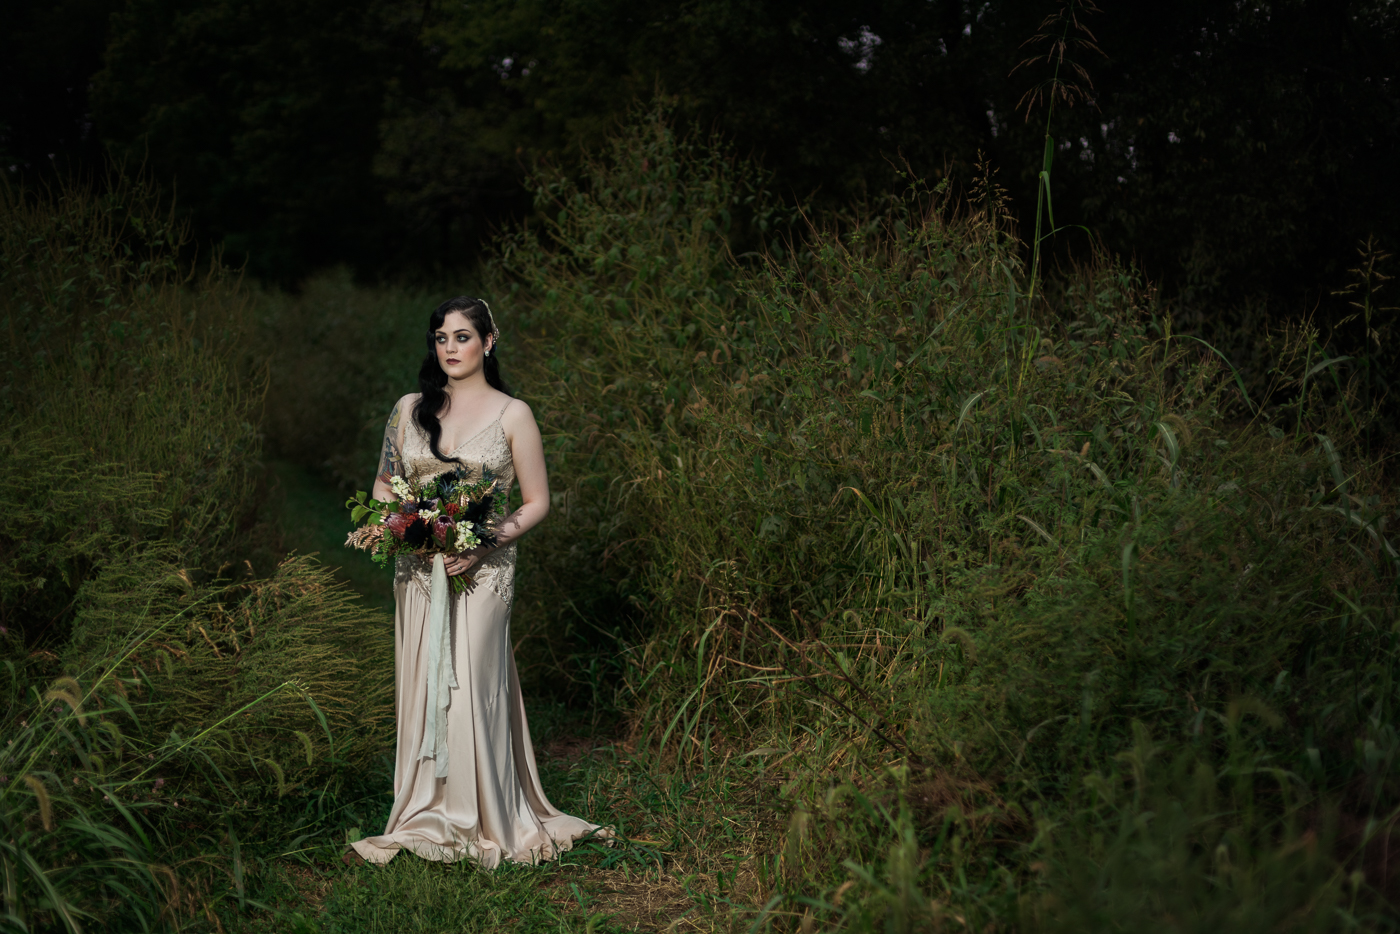 and-how-imaging-gothic-inspired-styled-shoot-gothic-wedding-1920s-theme-wedding-1920s-inspired-styled-shoot-halloween-styled-shoot-gothic-inspired-wedding-49